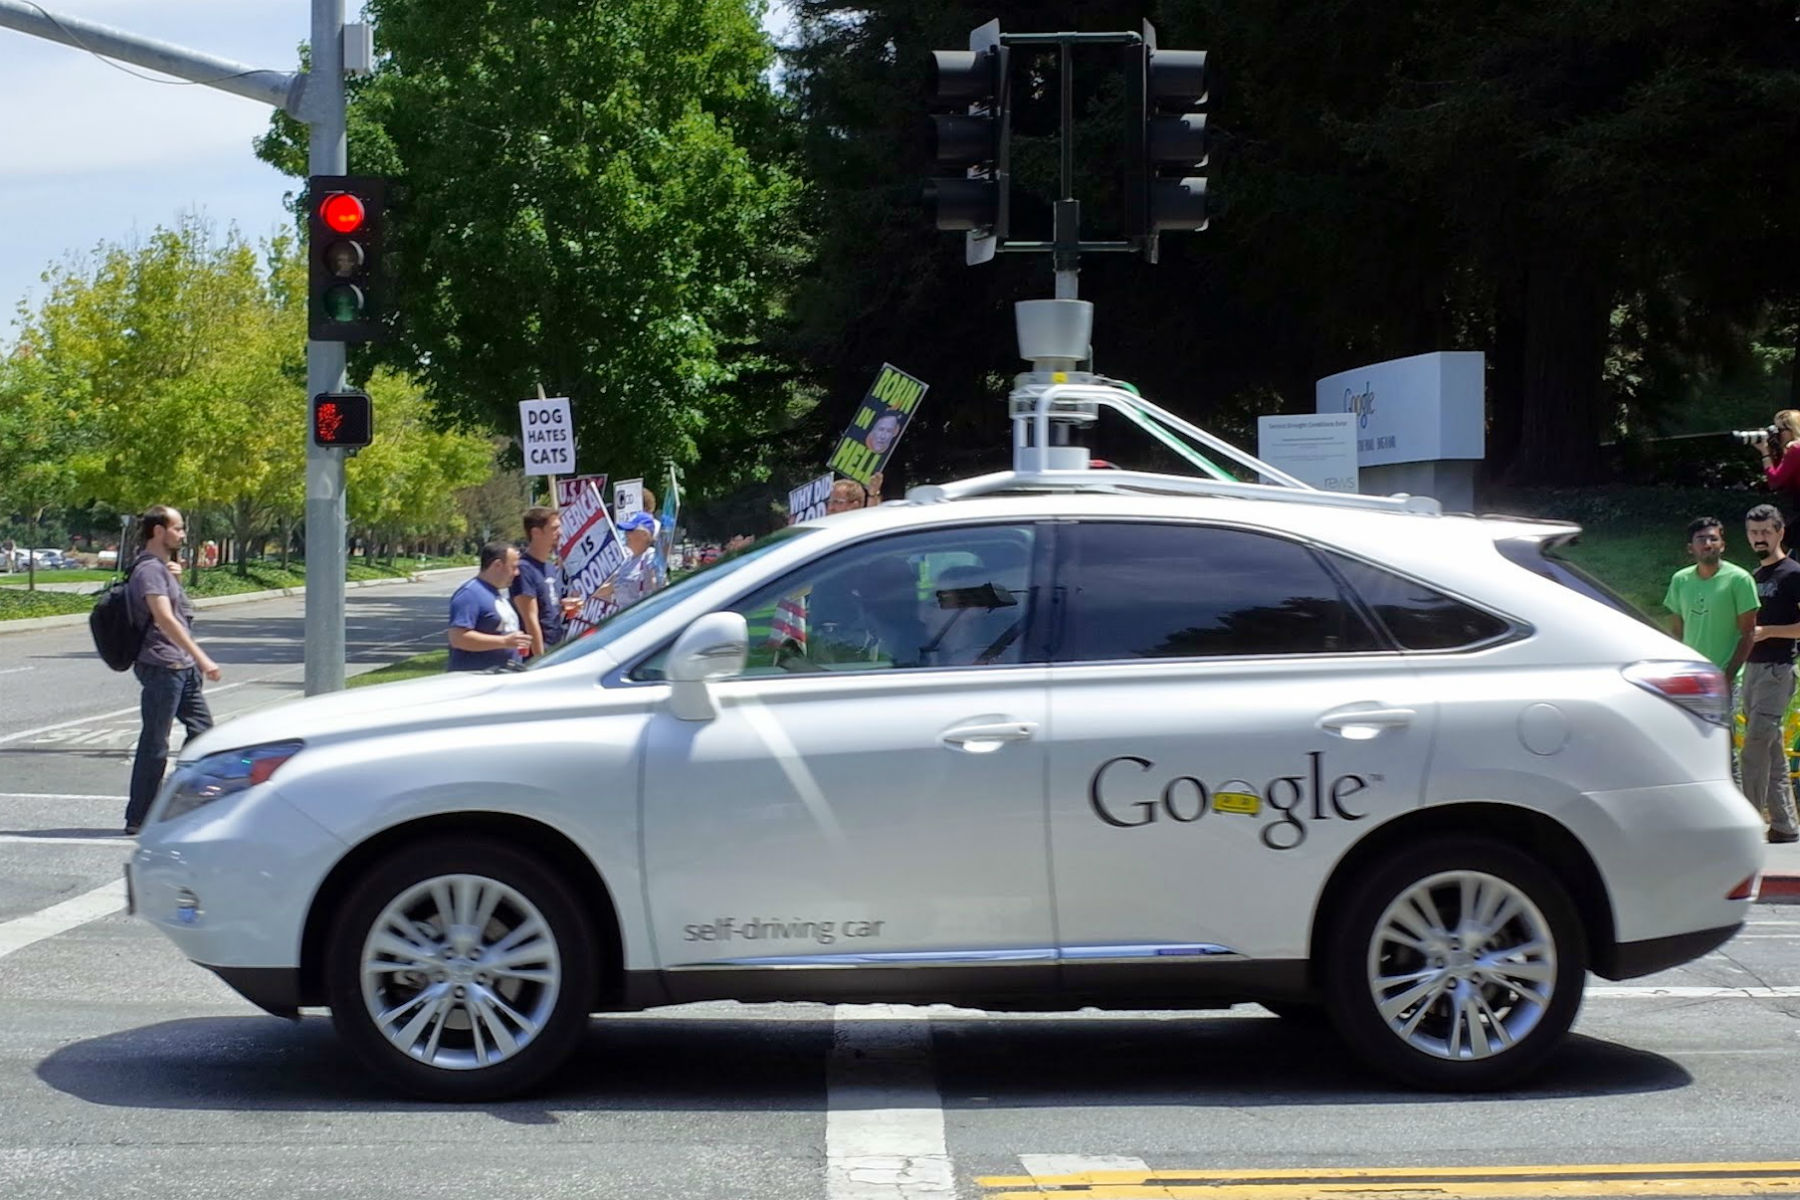 Google's self-driving cars can now beep at other road users